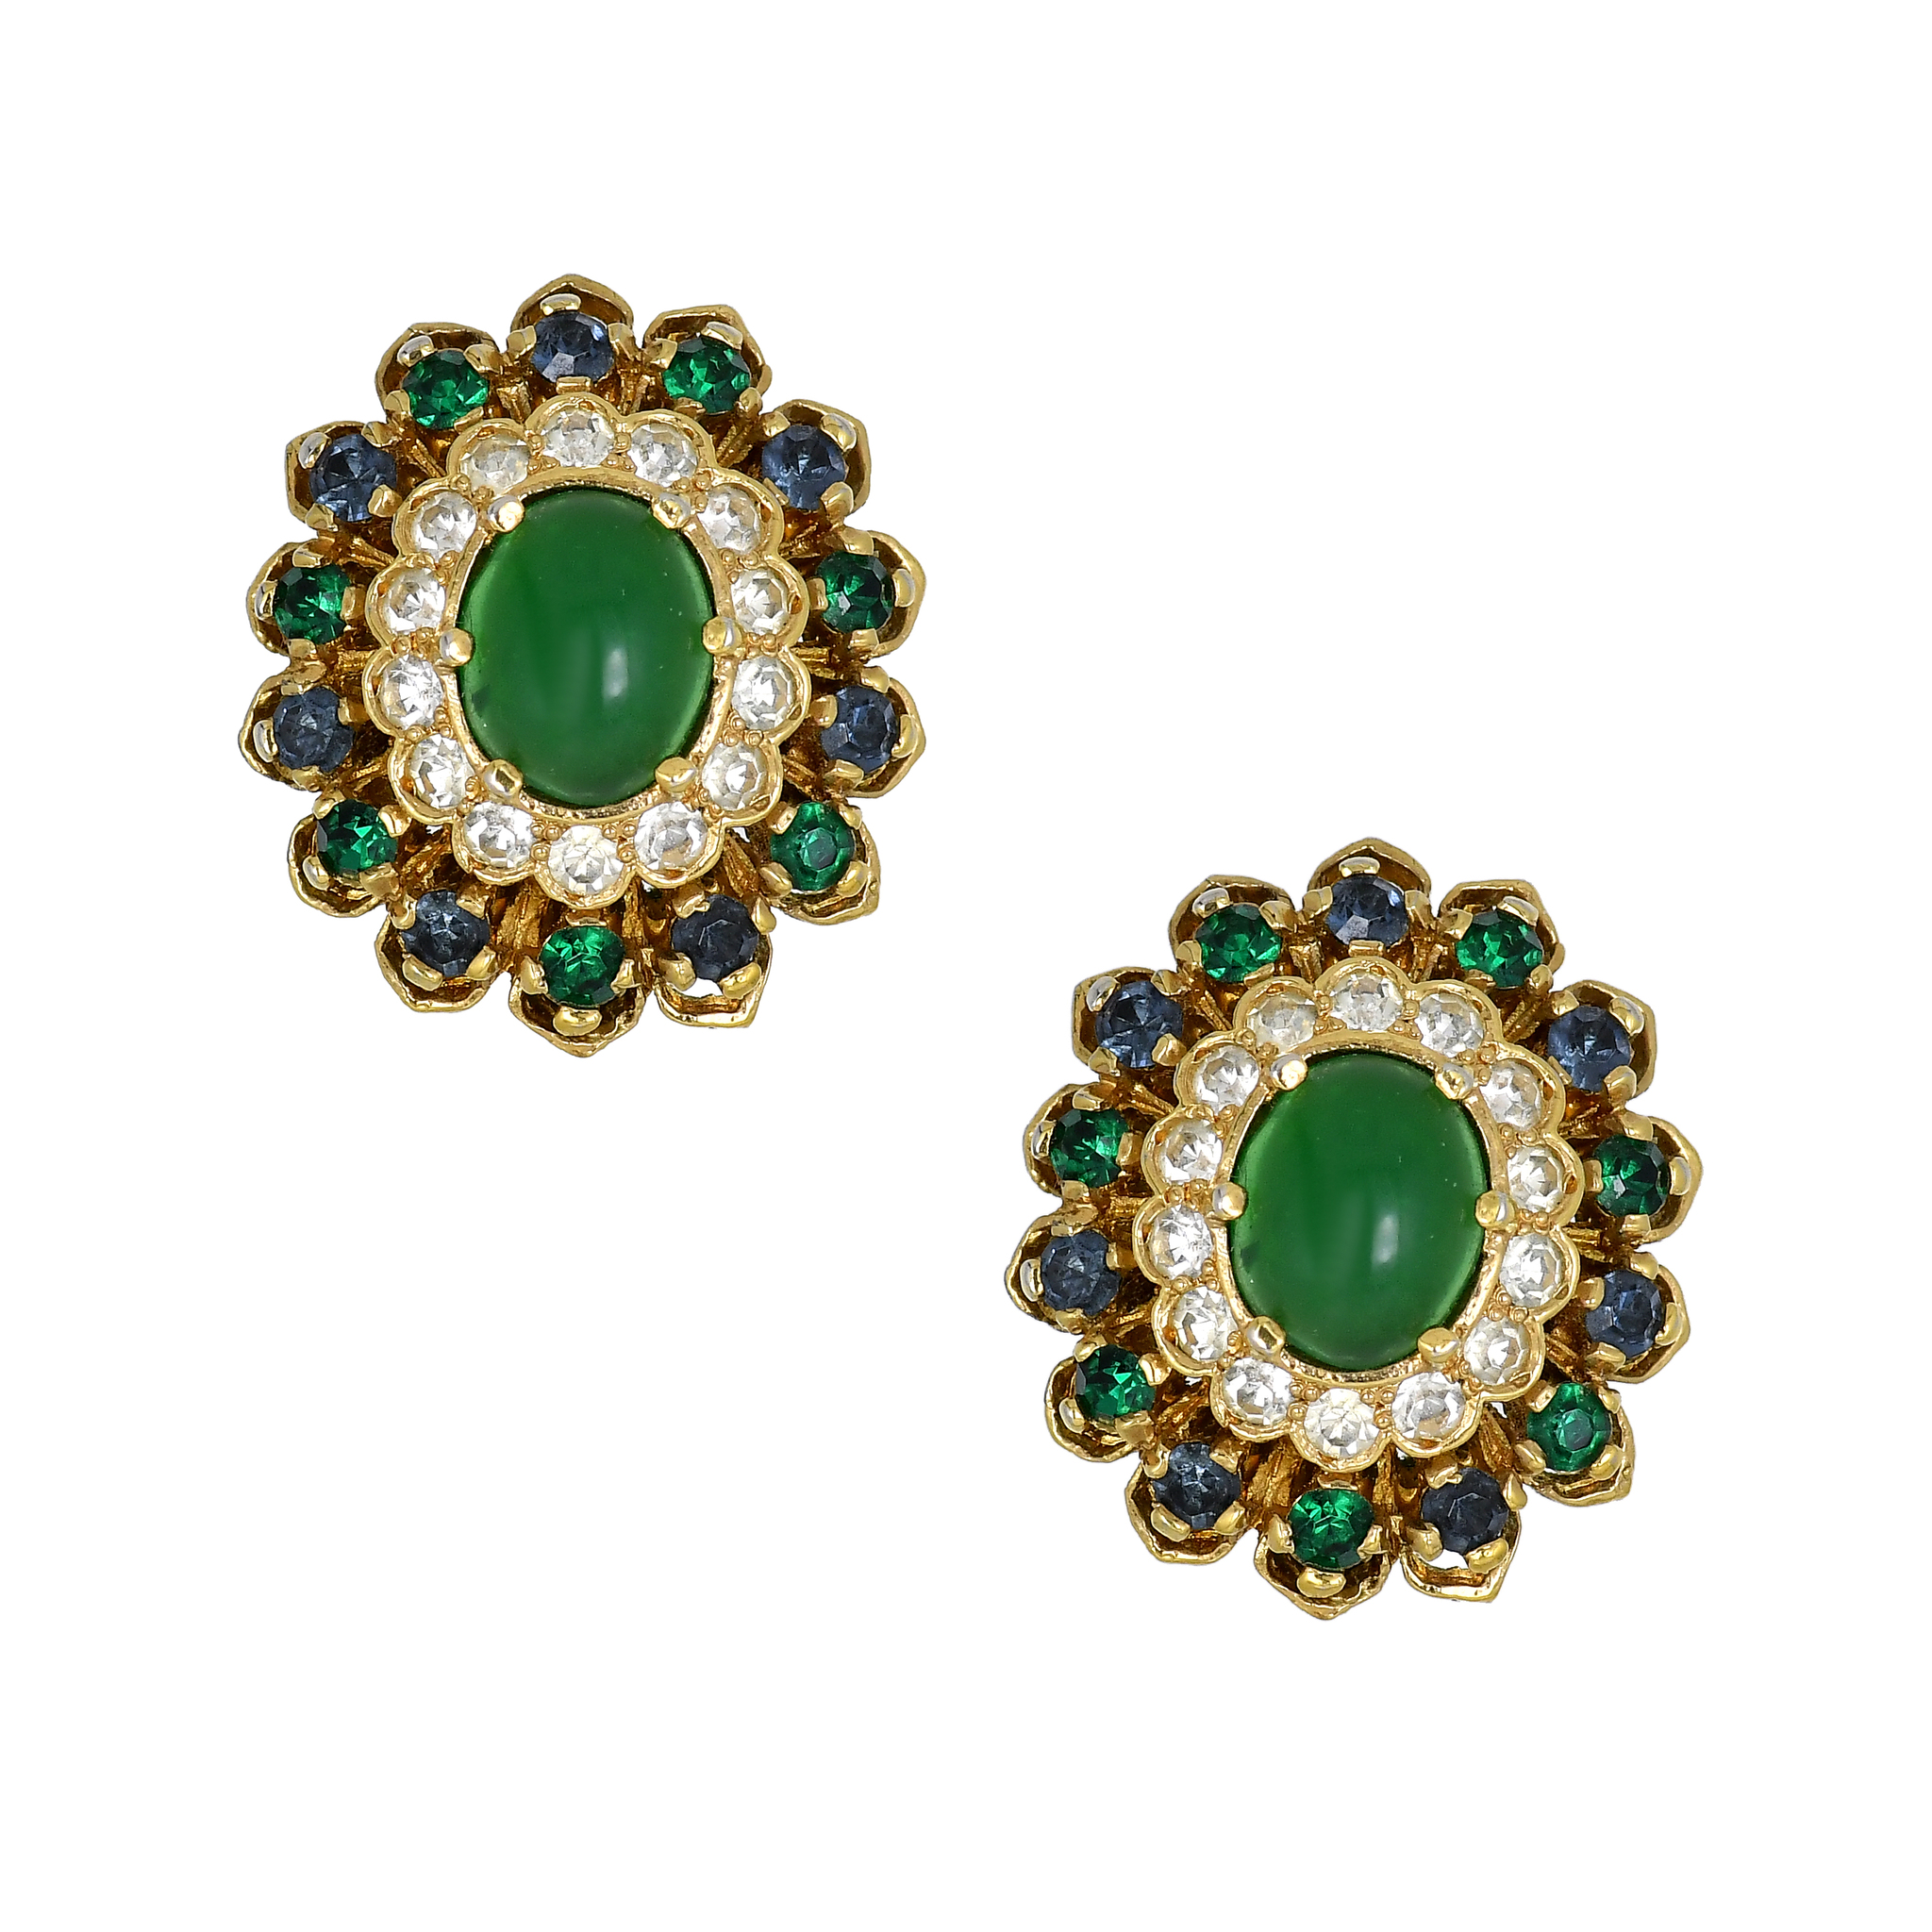 Collectible clip-on earrings from Panetta. 1960s – 70s